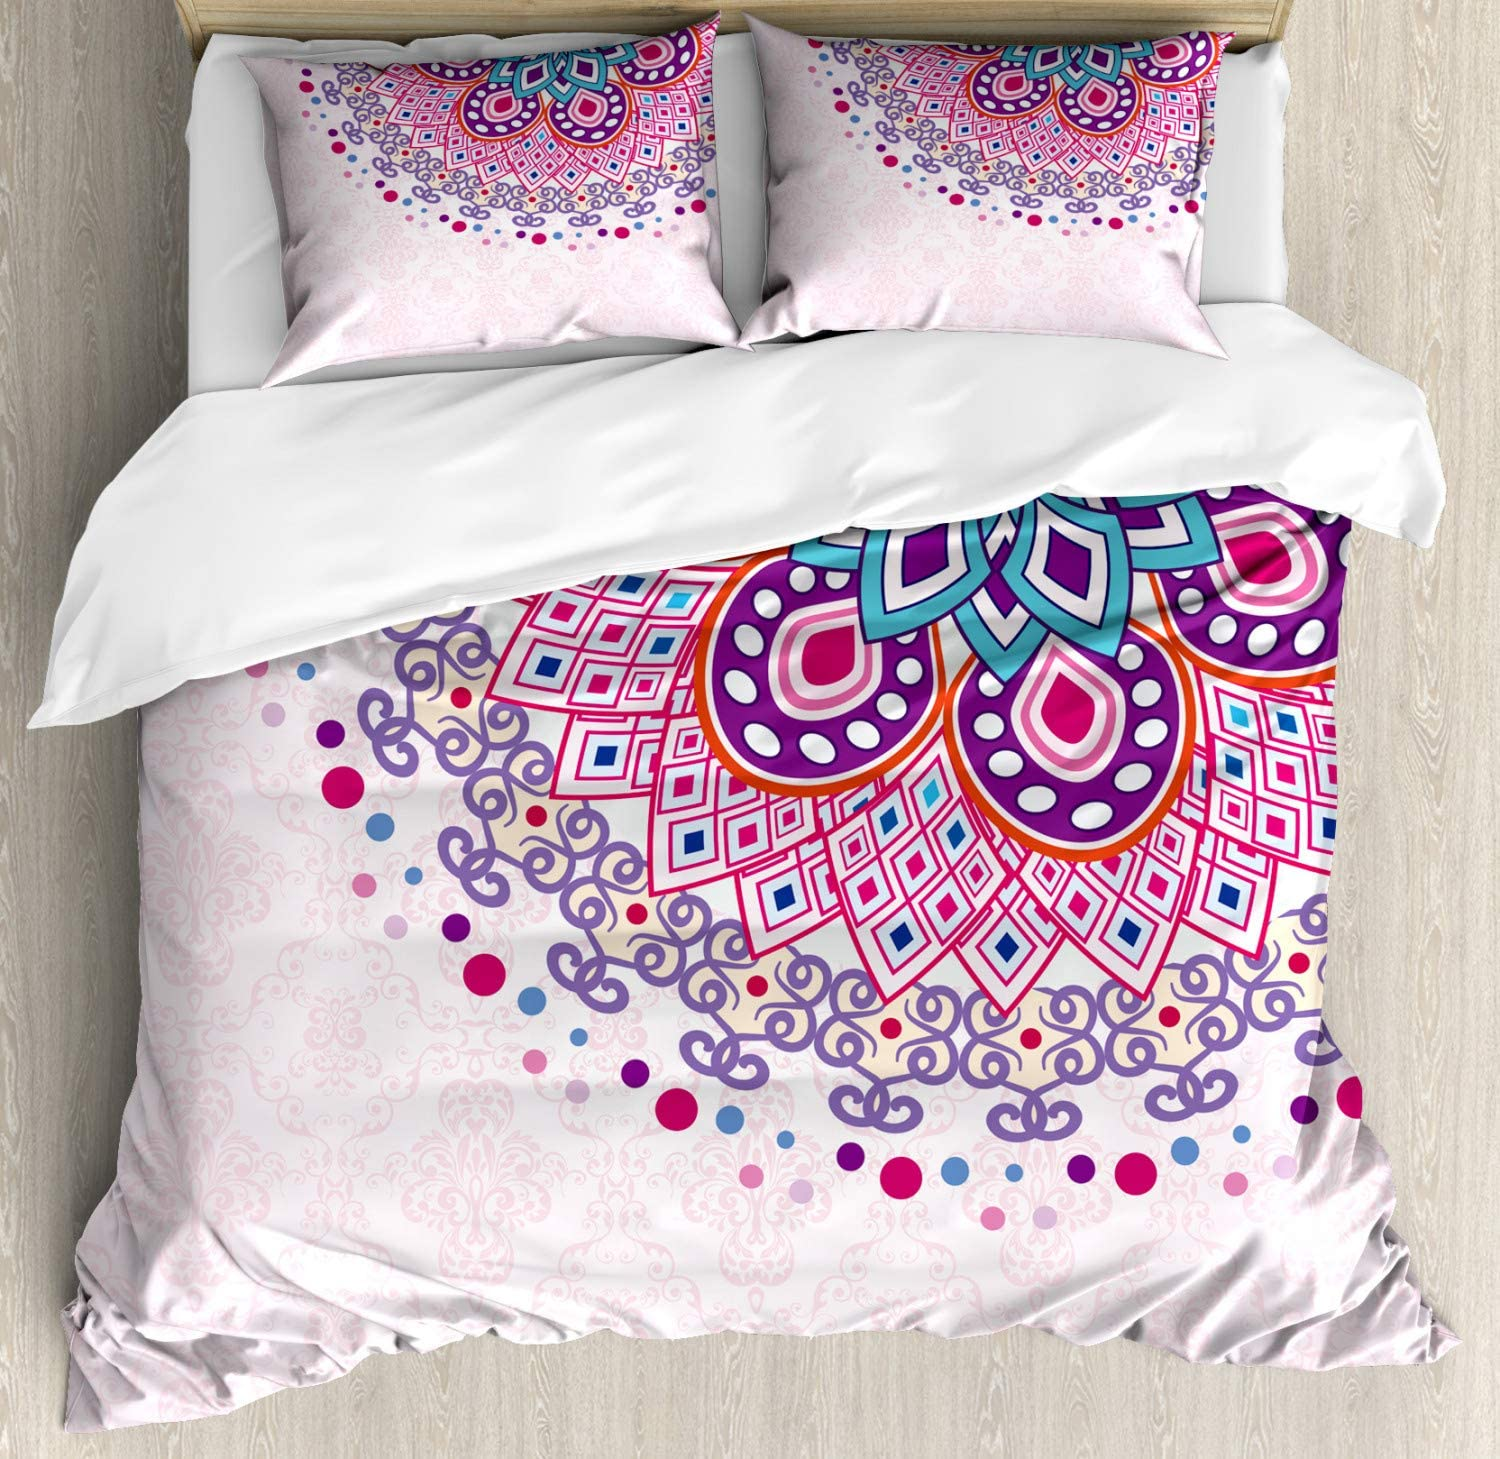 Ambesonne Mandala Duvet Cover Set, Ornamental Meditation Boho Style Print, Decorative 3 Piece Bedding Set with 2 Pillow Shams, King Size, Pink Purple